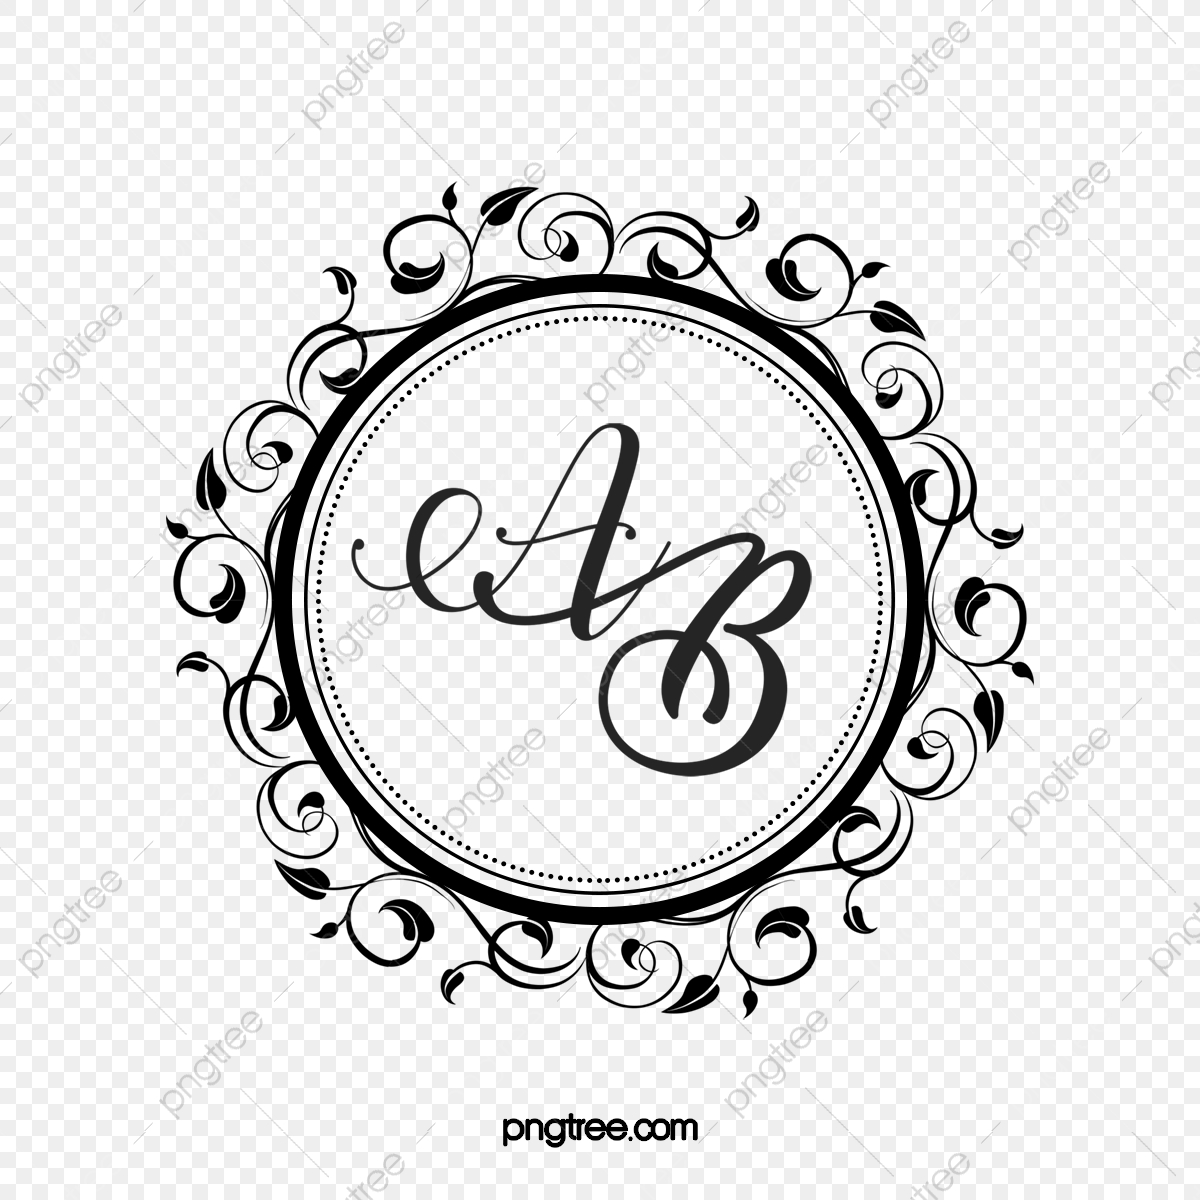 Wedding Monogram Png Vector Psd And Clipart With Transparent Background For Free Download Pngtree